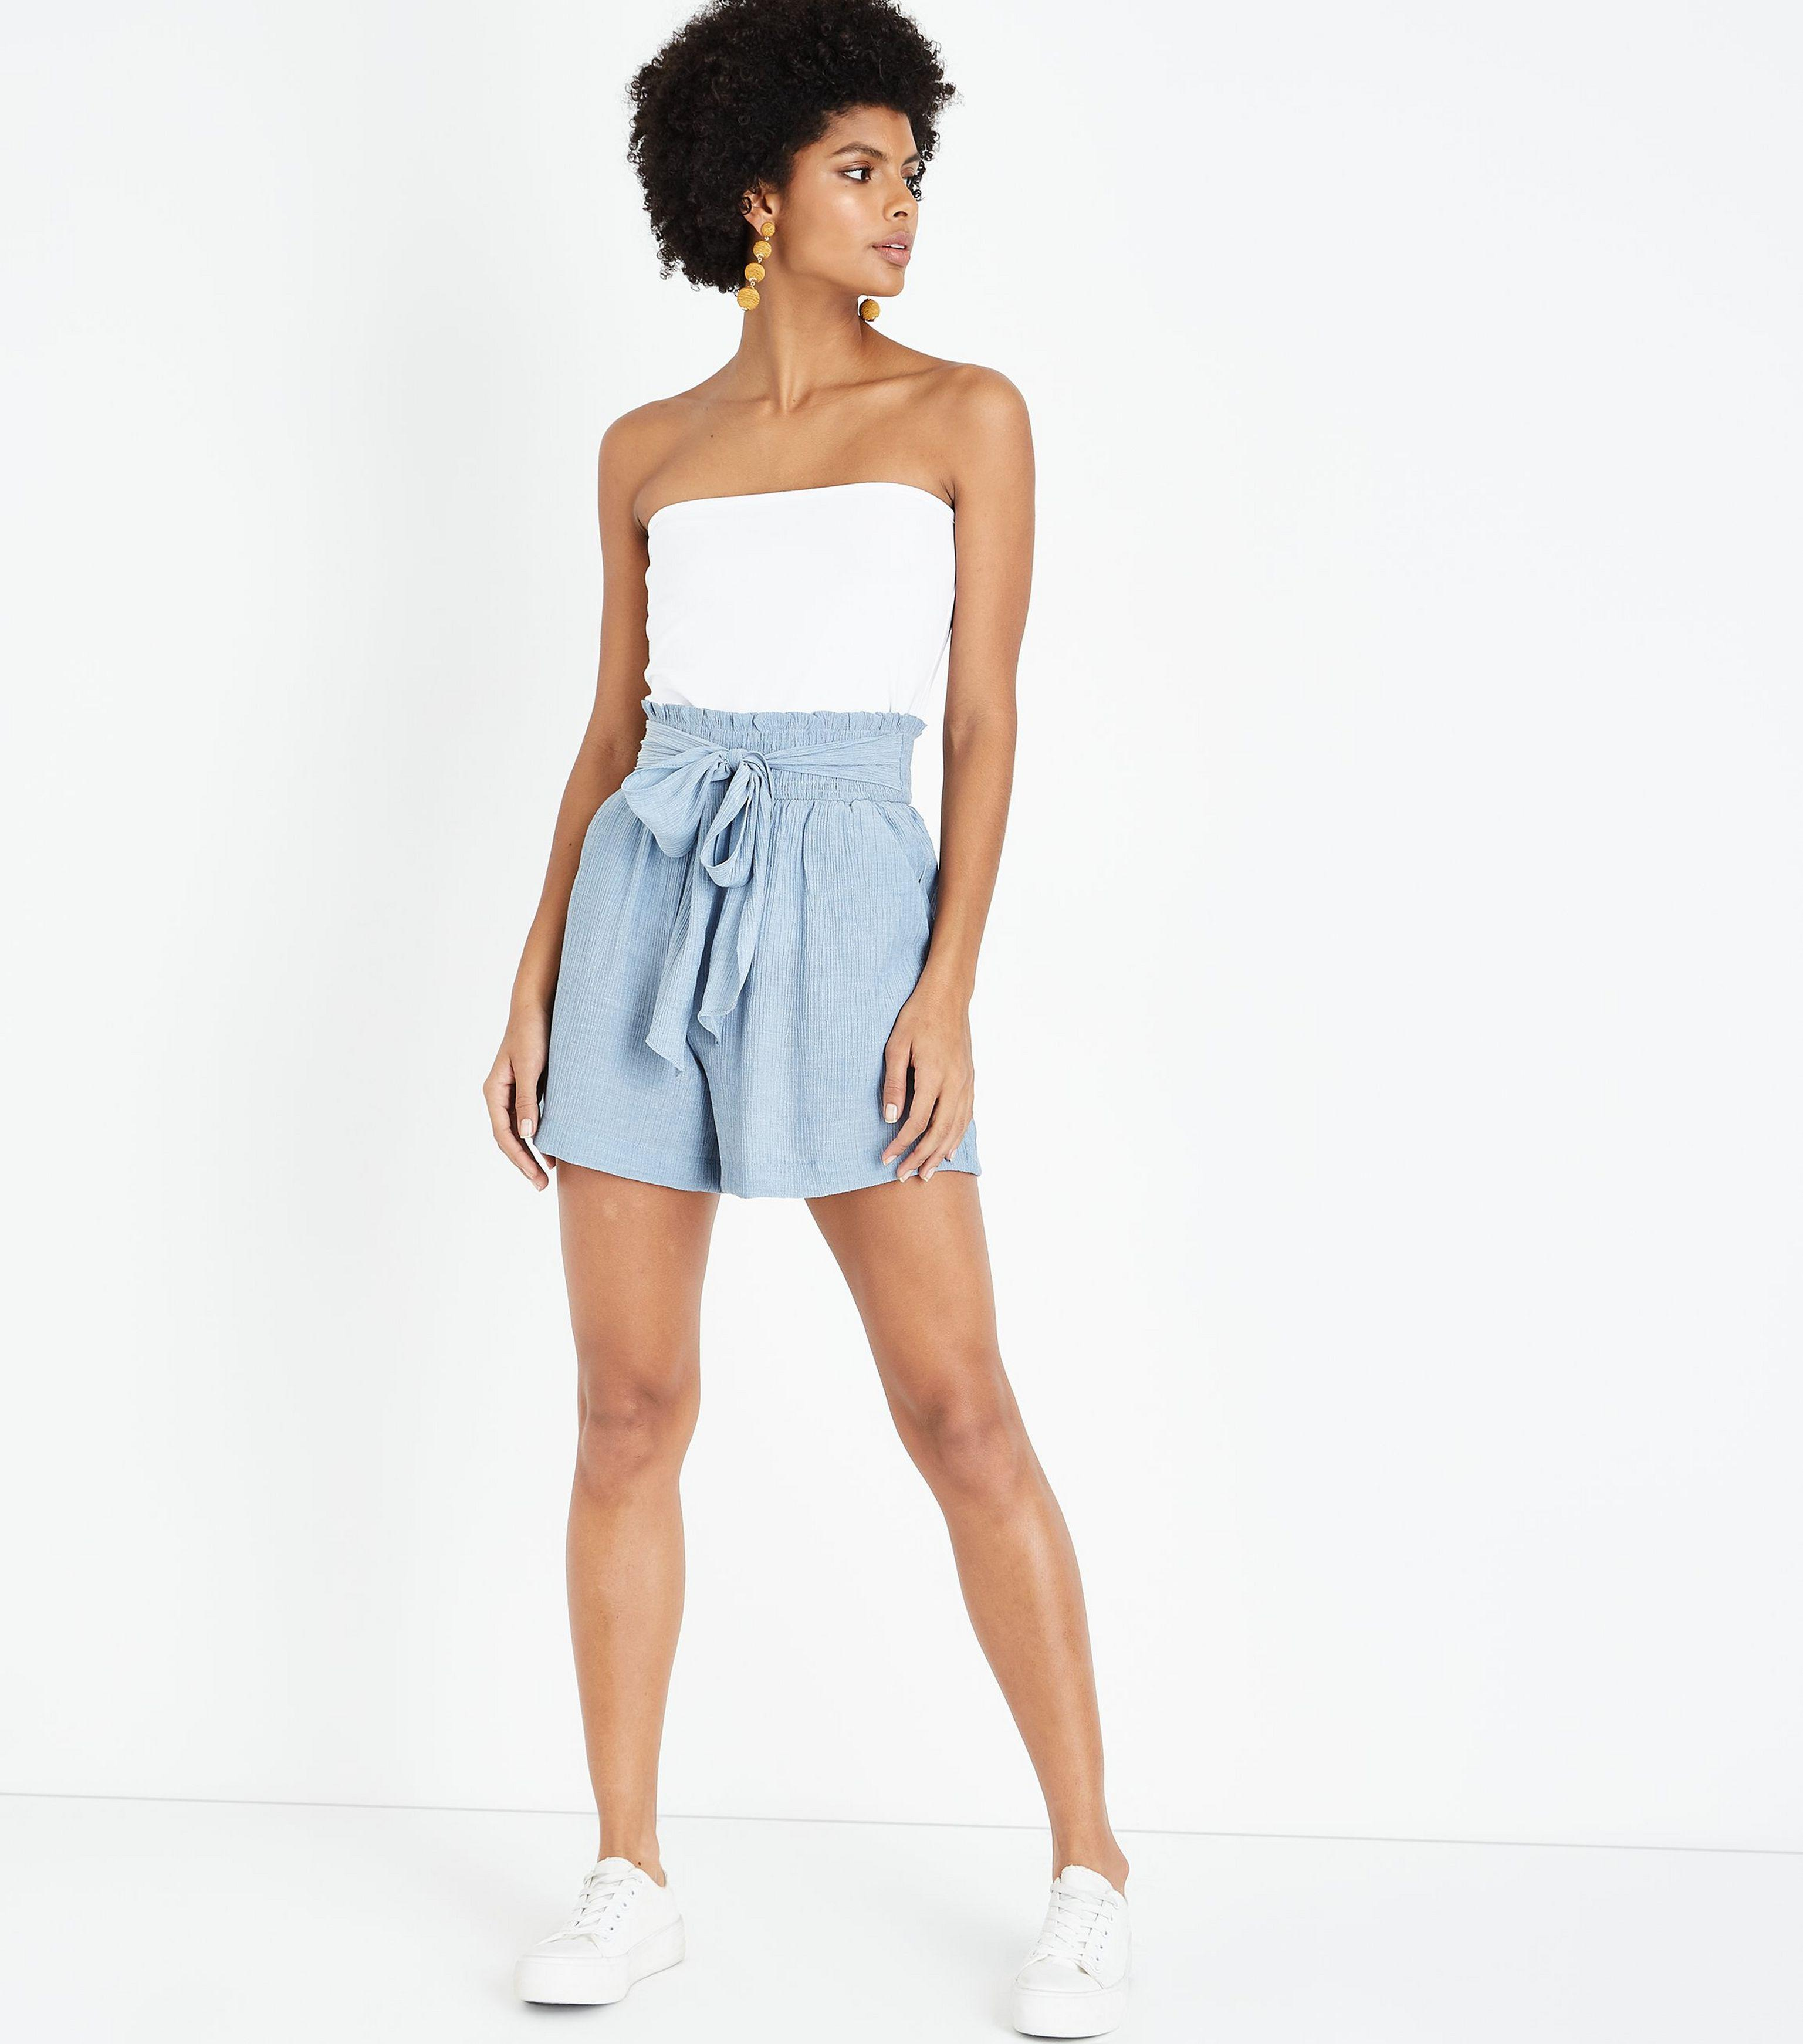 largest selection of yet not vulgar wholesale price New Look Synthetic Pale Blue Crepe Tie Waist Shorts - Lyst